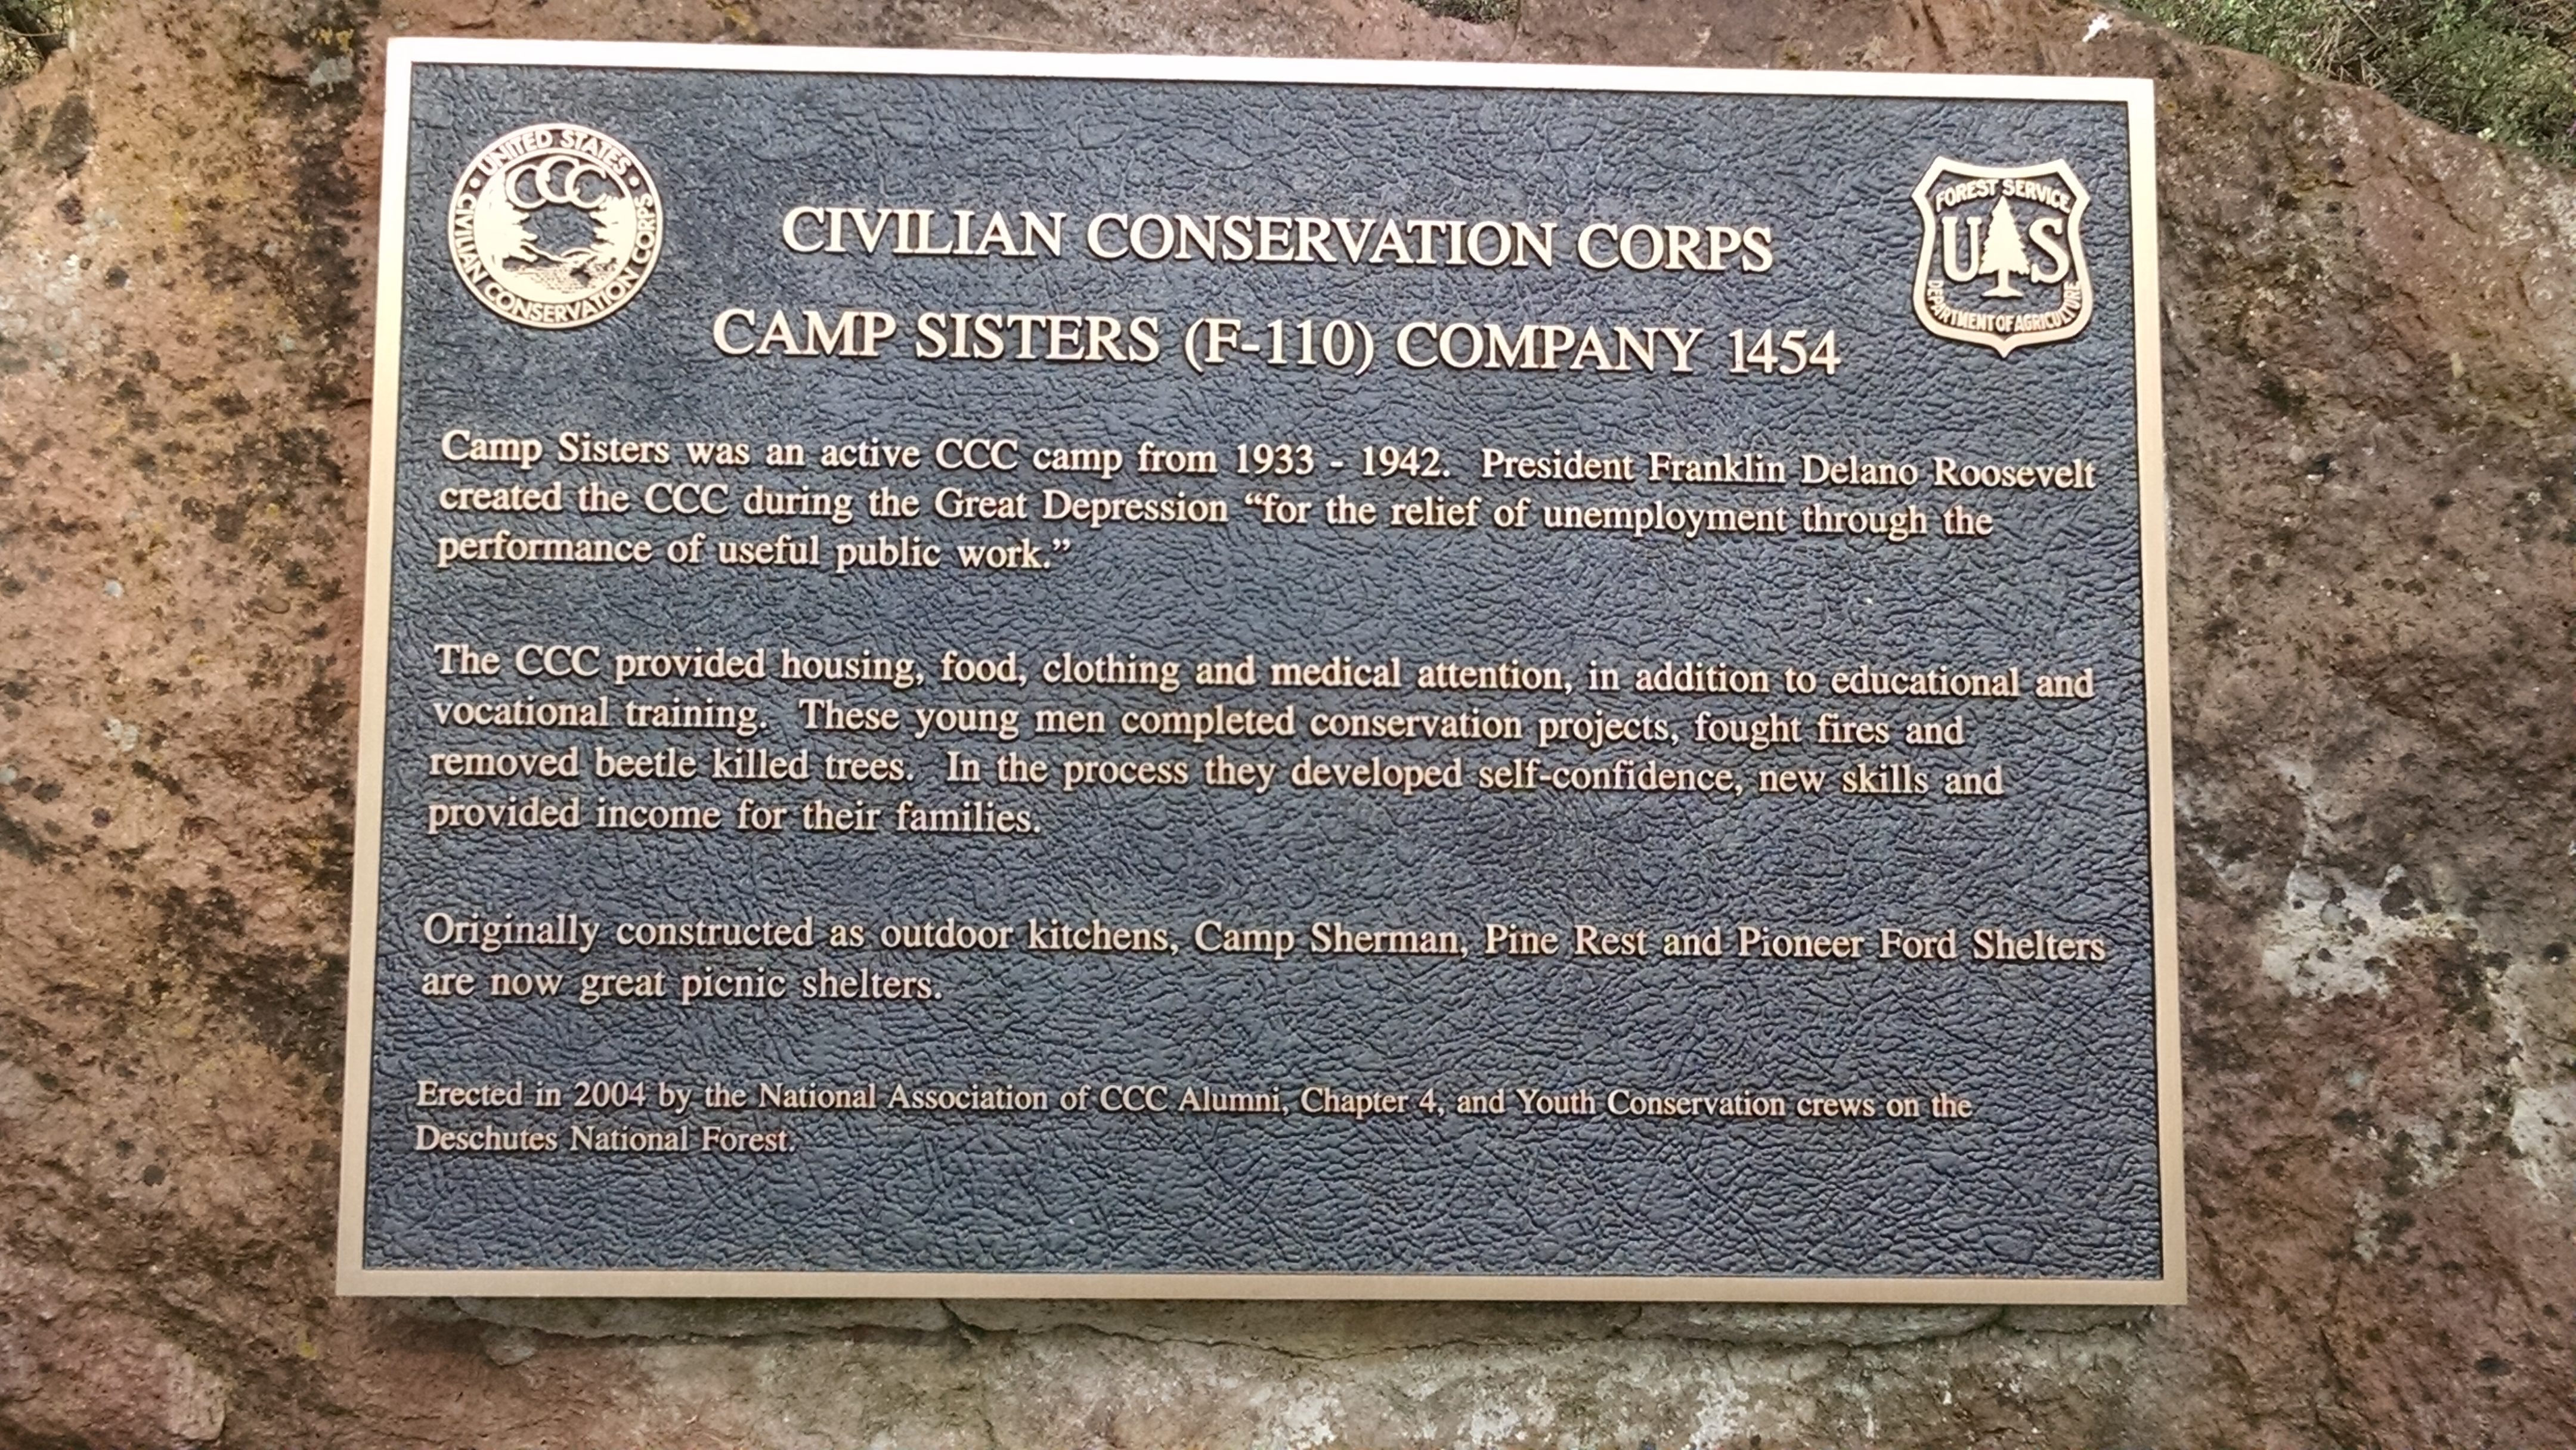 Camp Sisters Improvements - Camp Sherman OR - Living New Deal